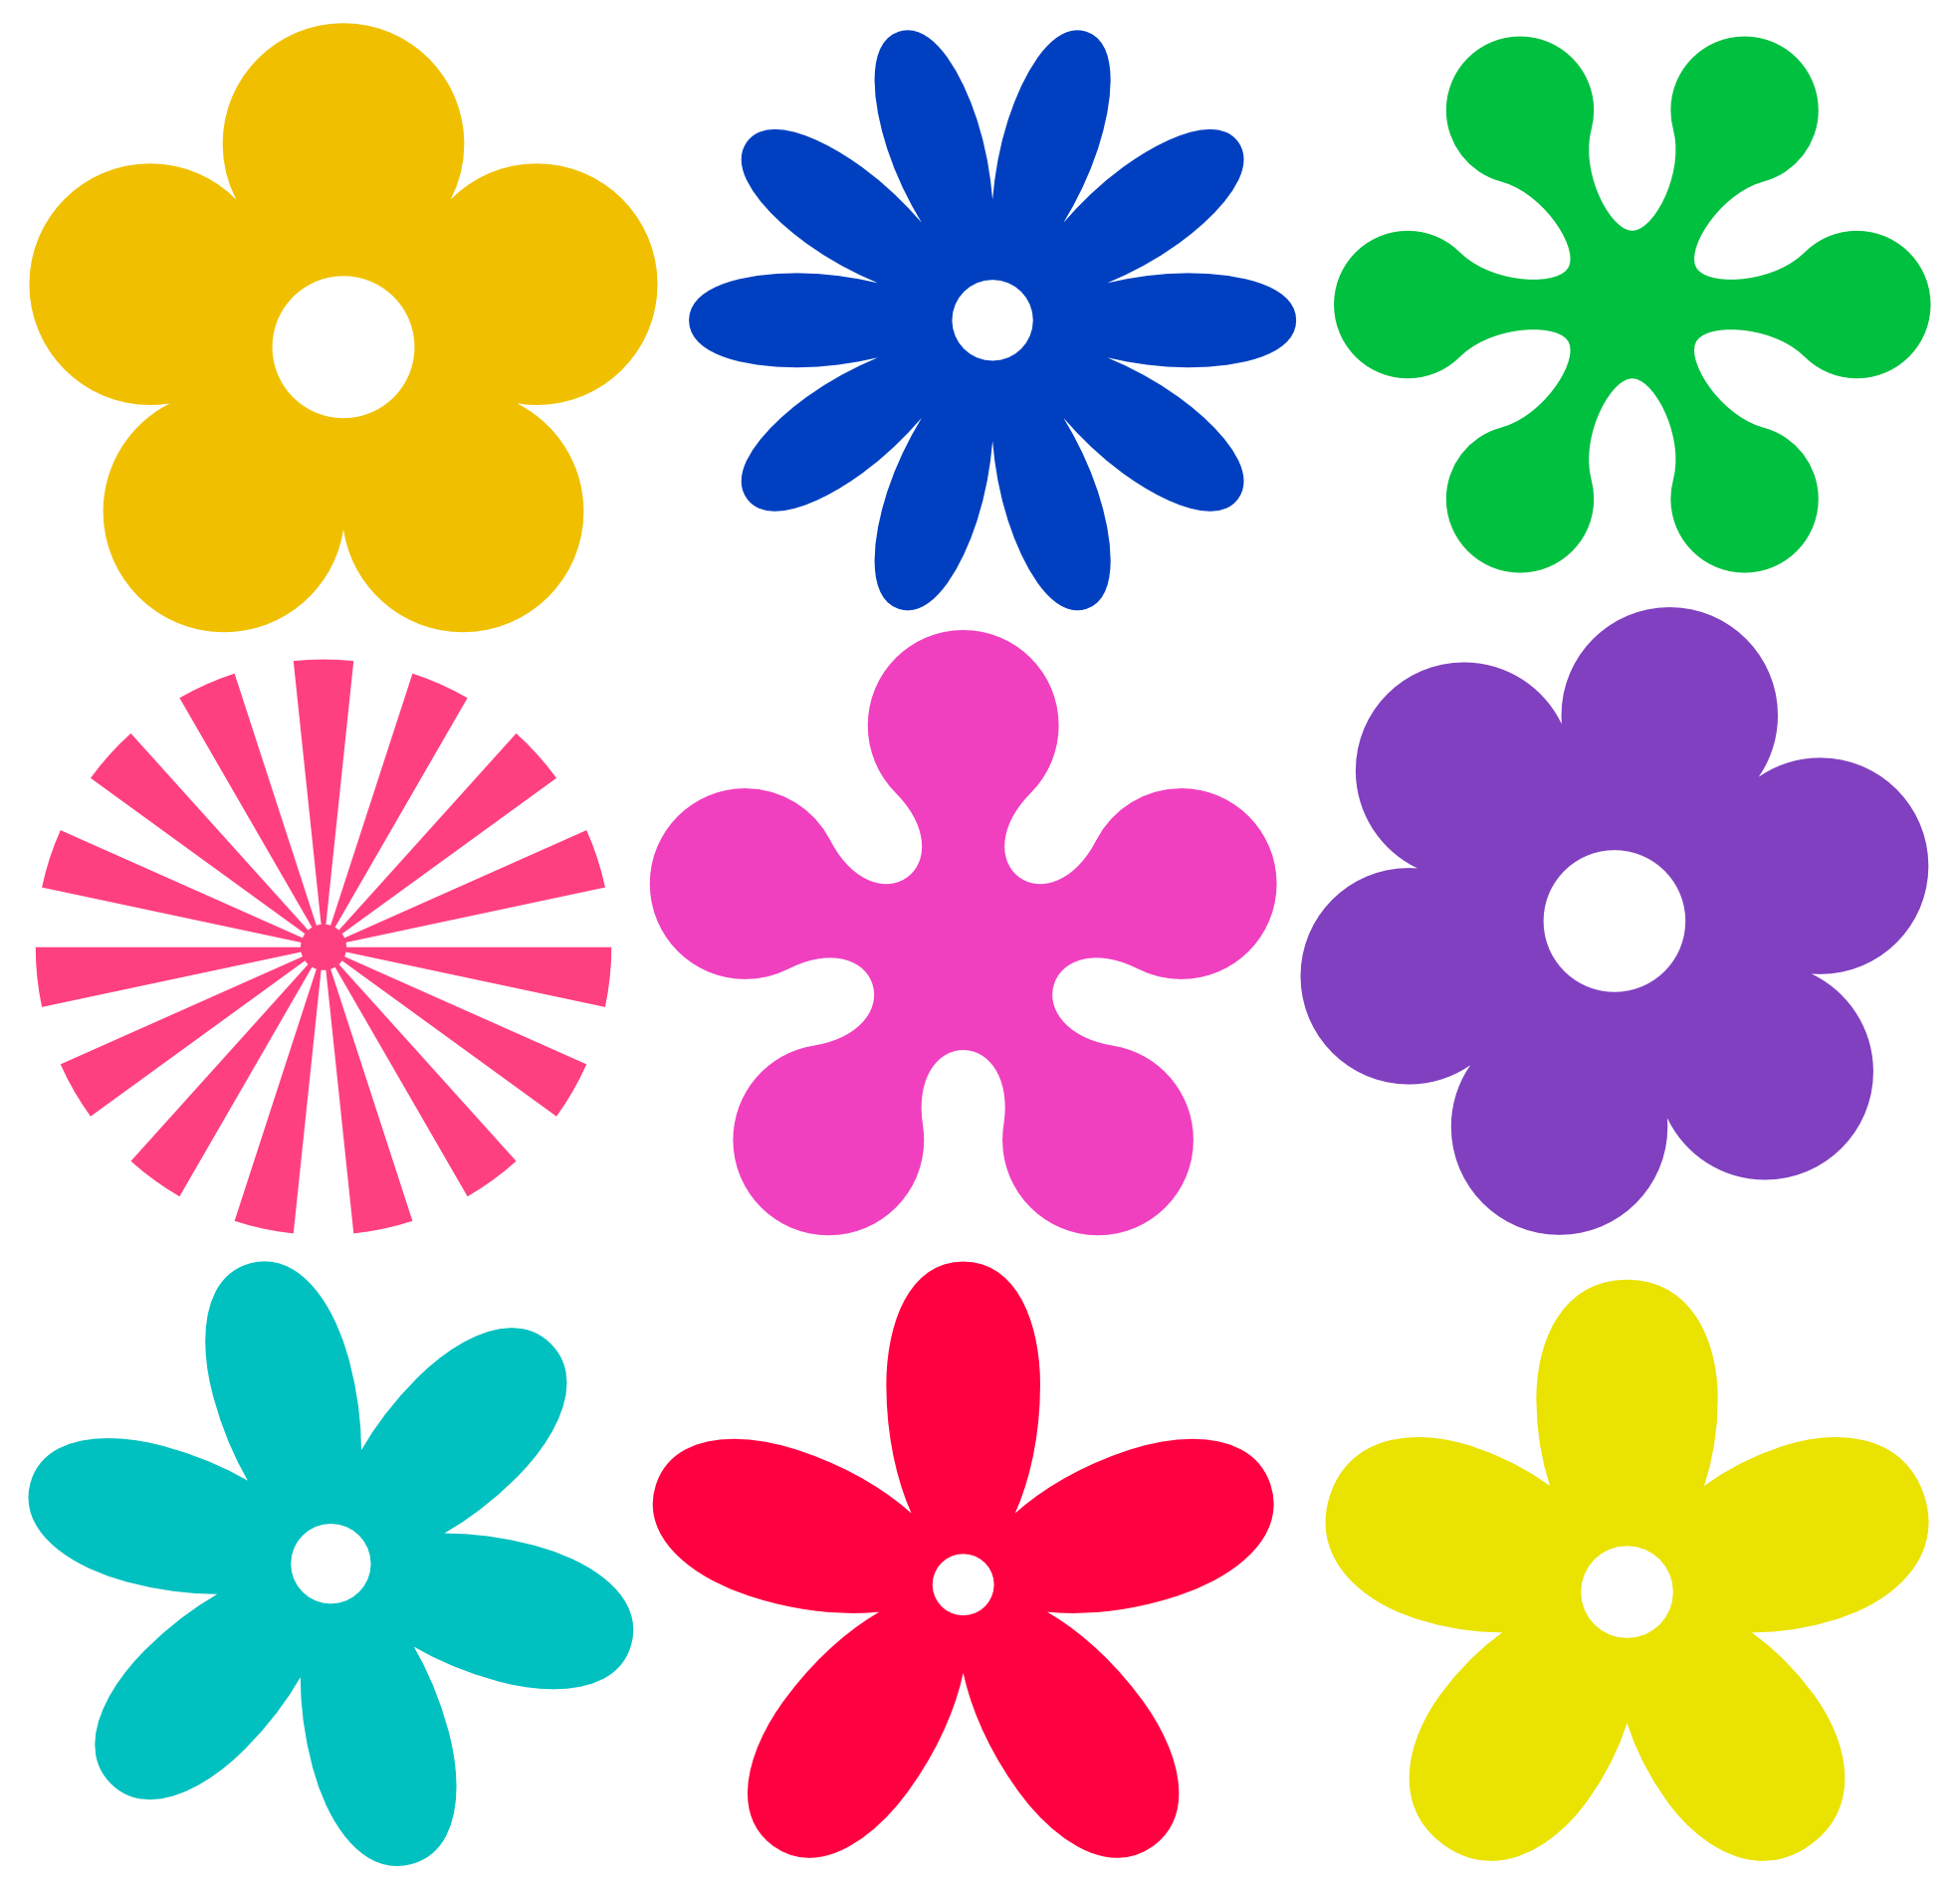 Youtube clipart floral. Clipartist net search results